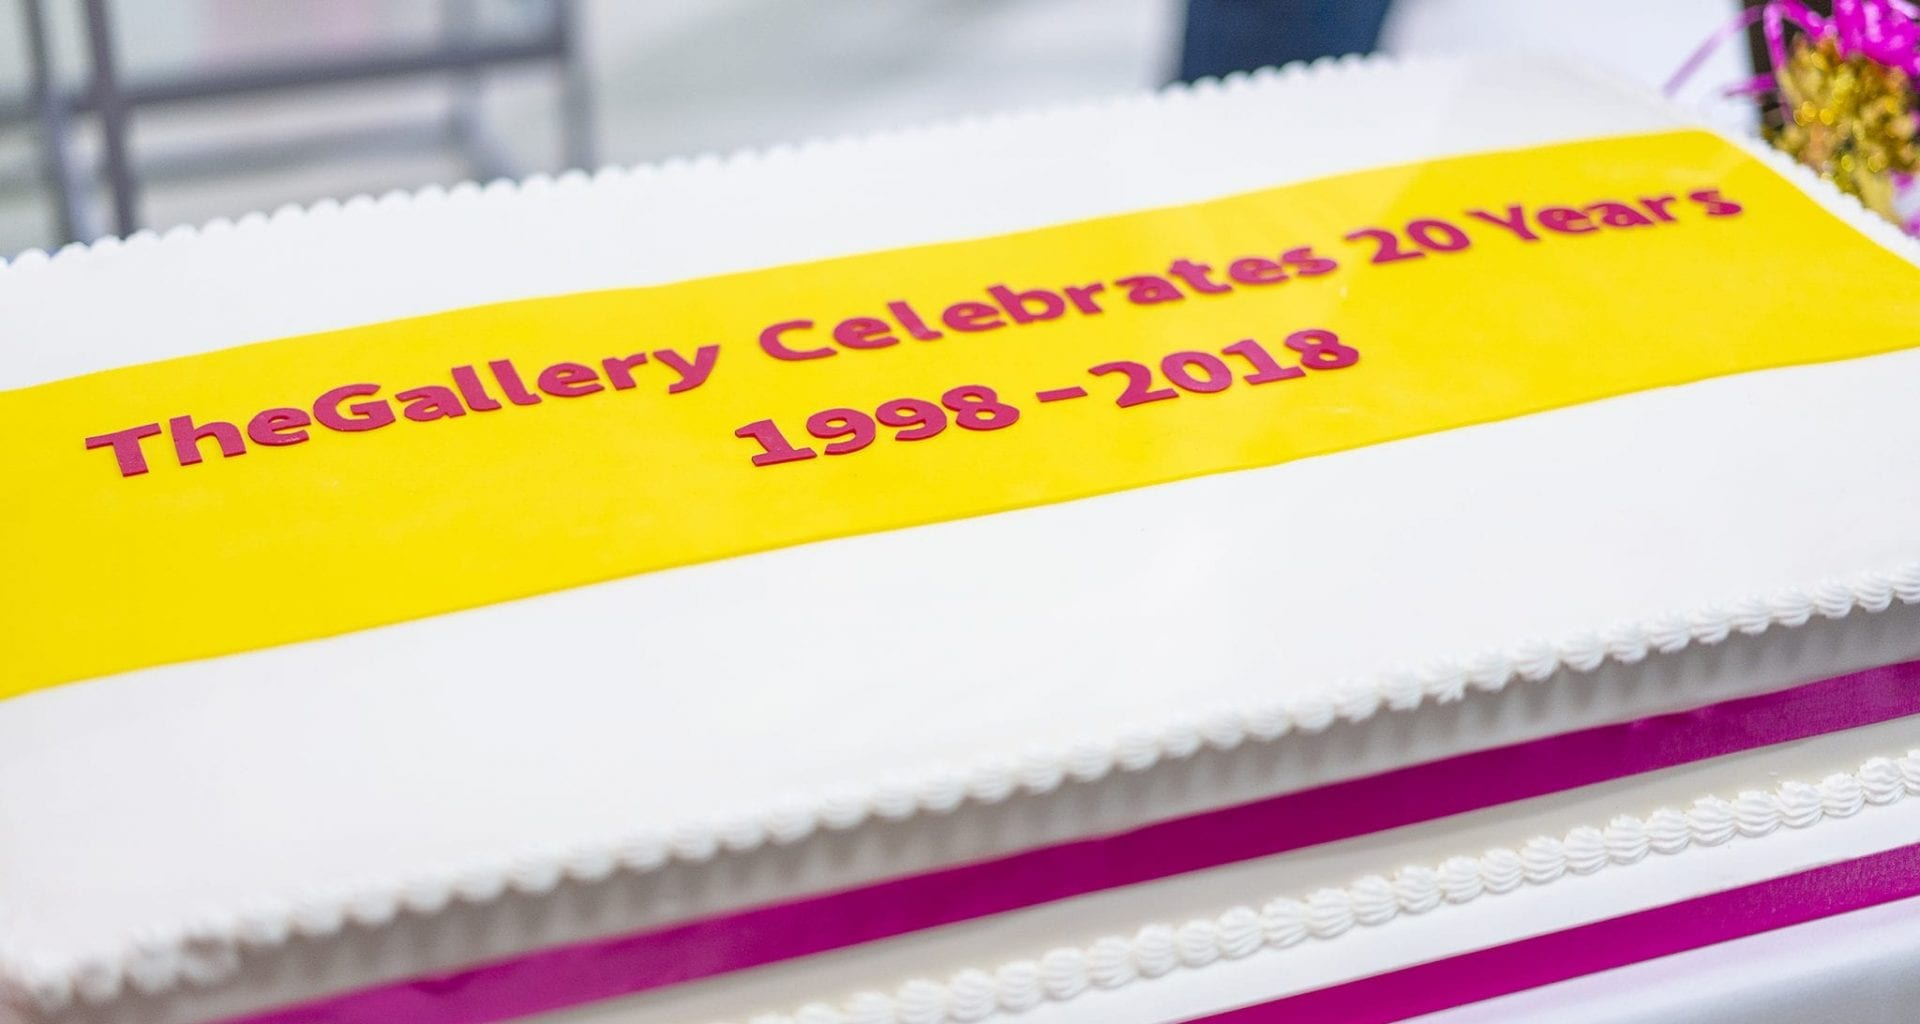 TheGallery celebrated its 20th birthday alongside the Suddenly Last Summer 2018 exhibition